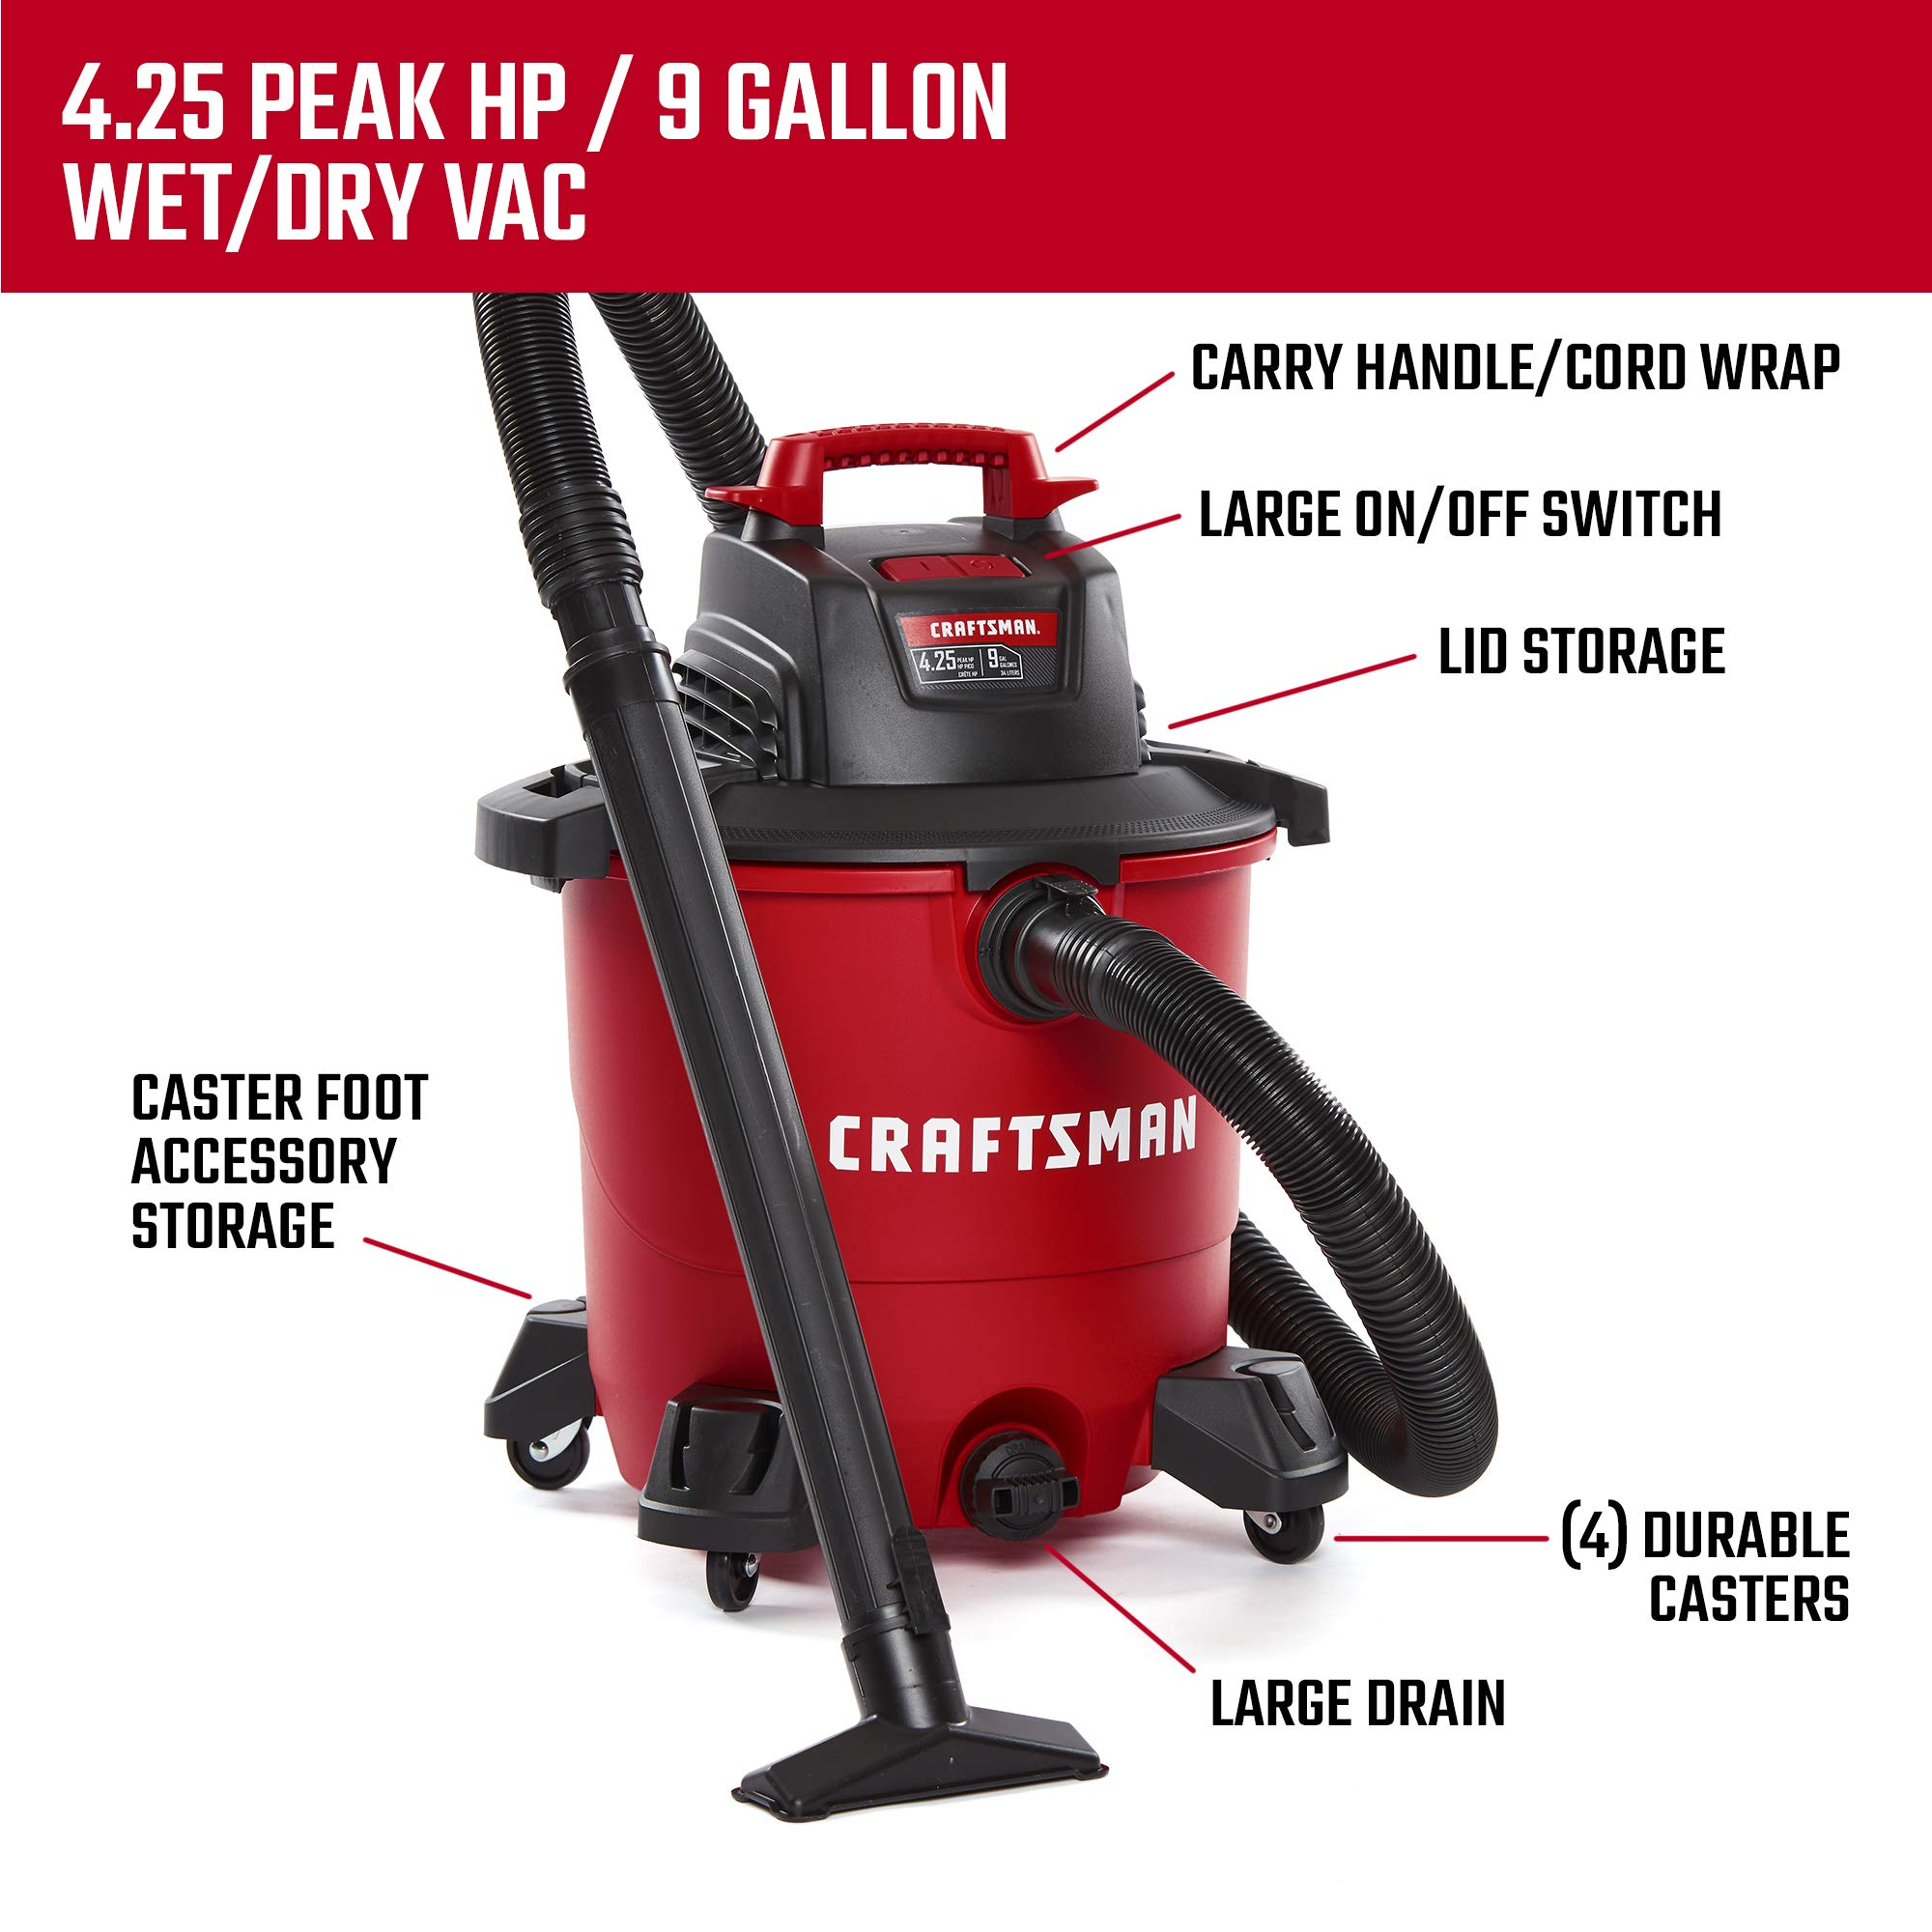 CRAFTSMAN CMXEVBE17590 9 gallon 4.25 Peak Hp Wet/Dry Vac, Portable Shop Vacuum with Attachments by Craftsman (Image #3)